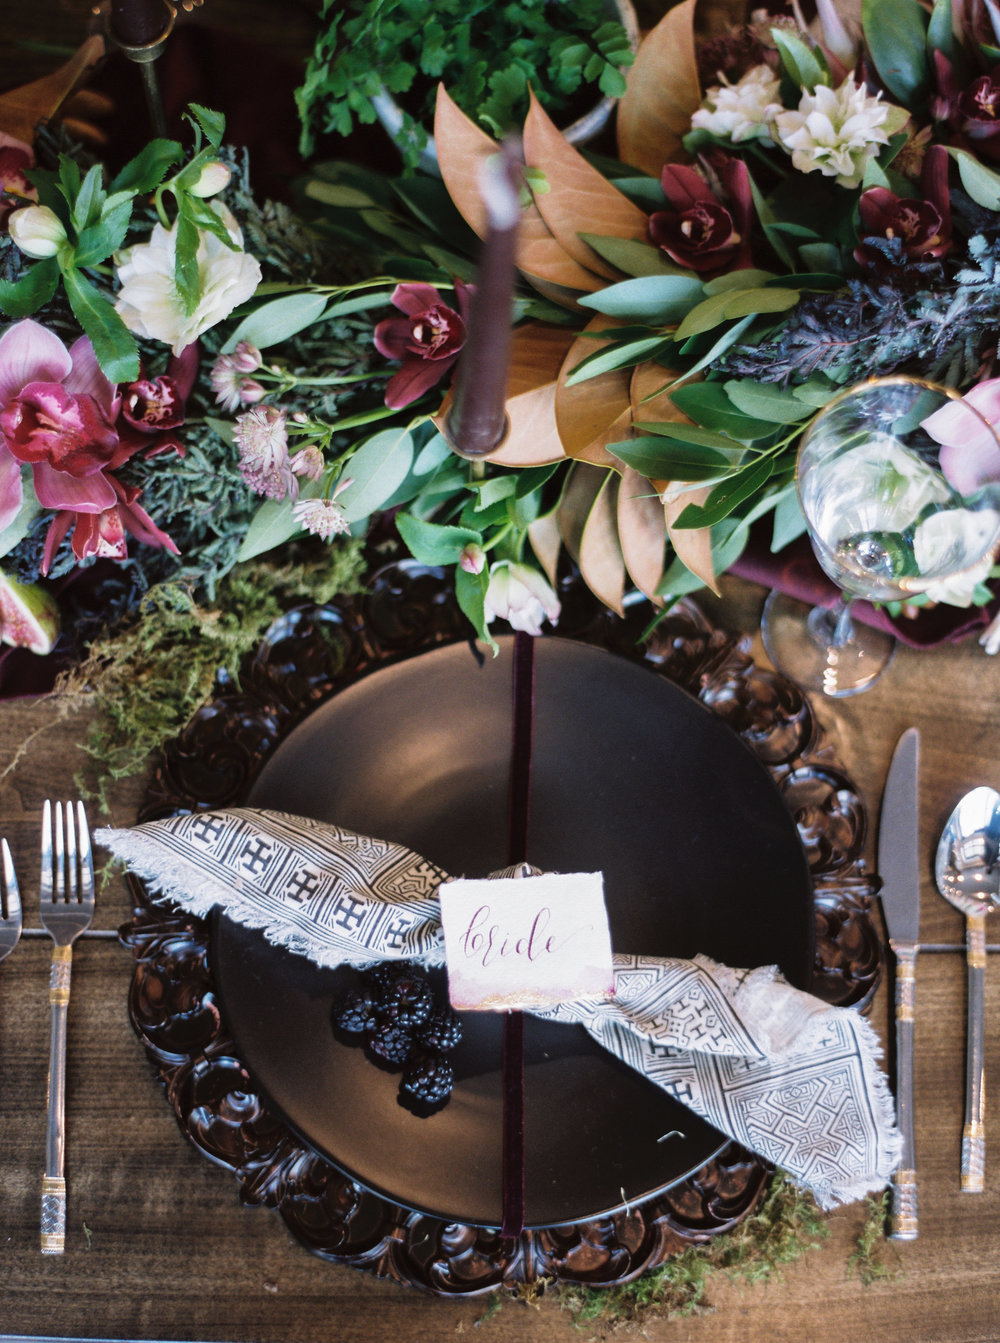 boho-inspired-wedding-at-casa-bella-in-sunol-california-63.jpg